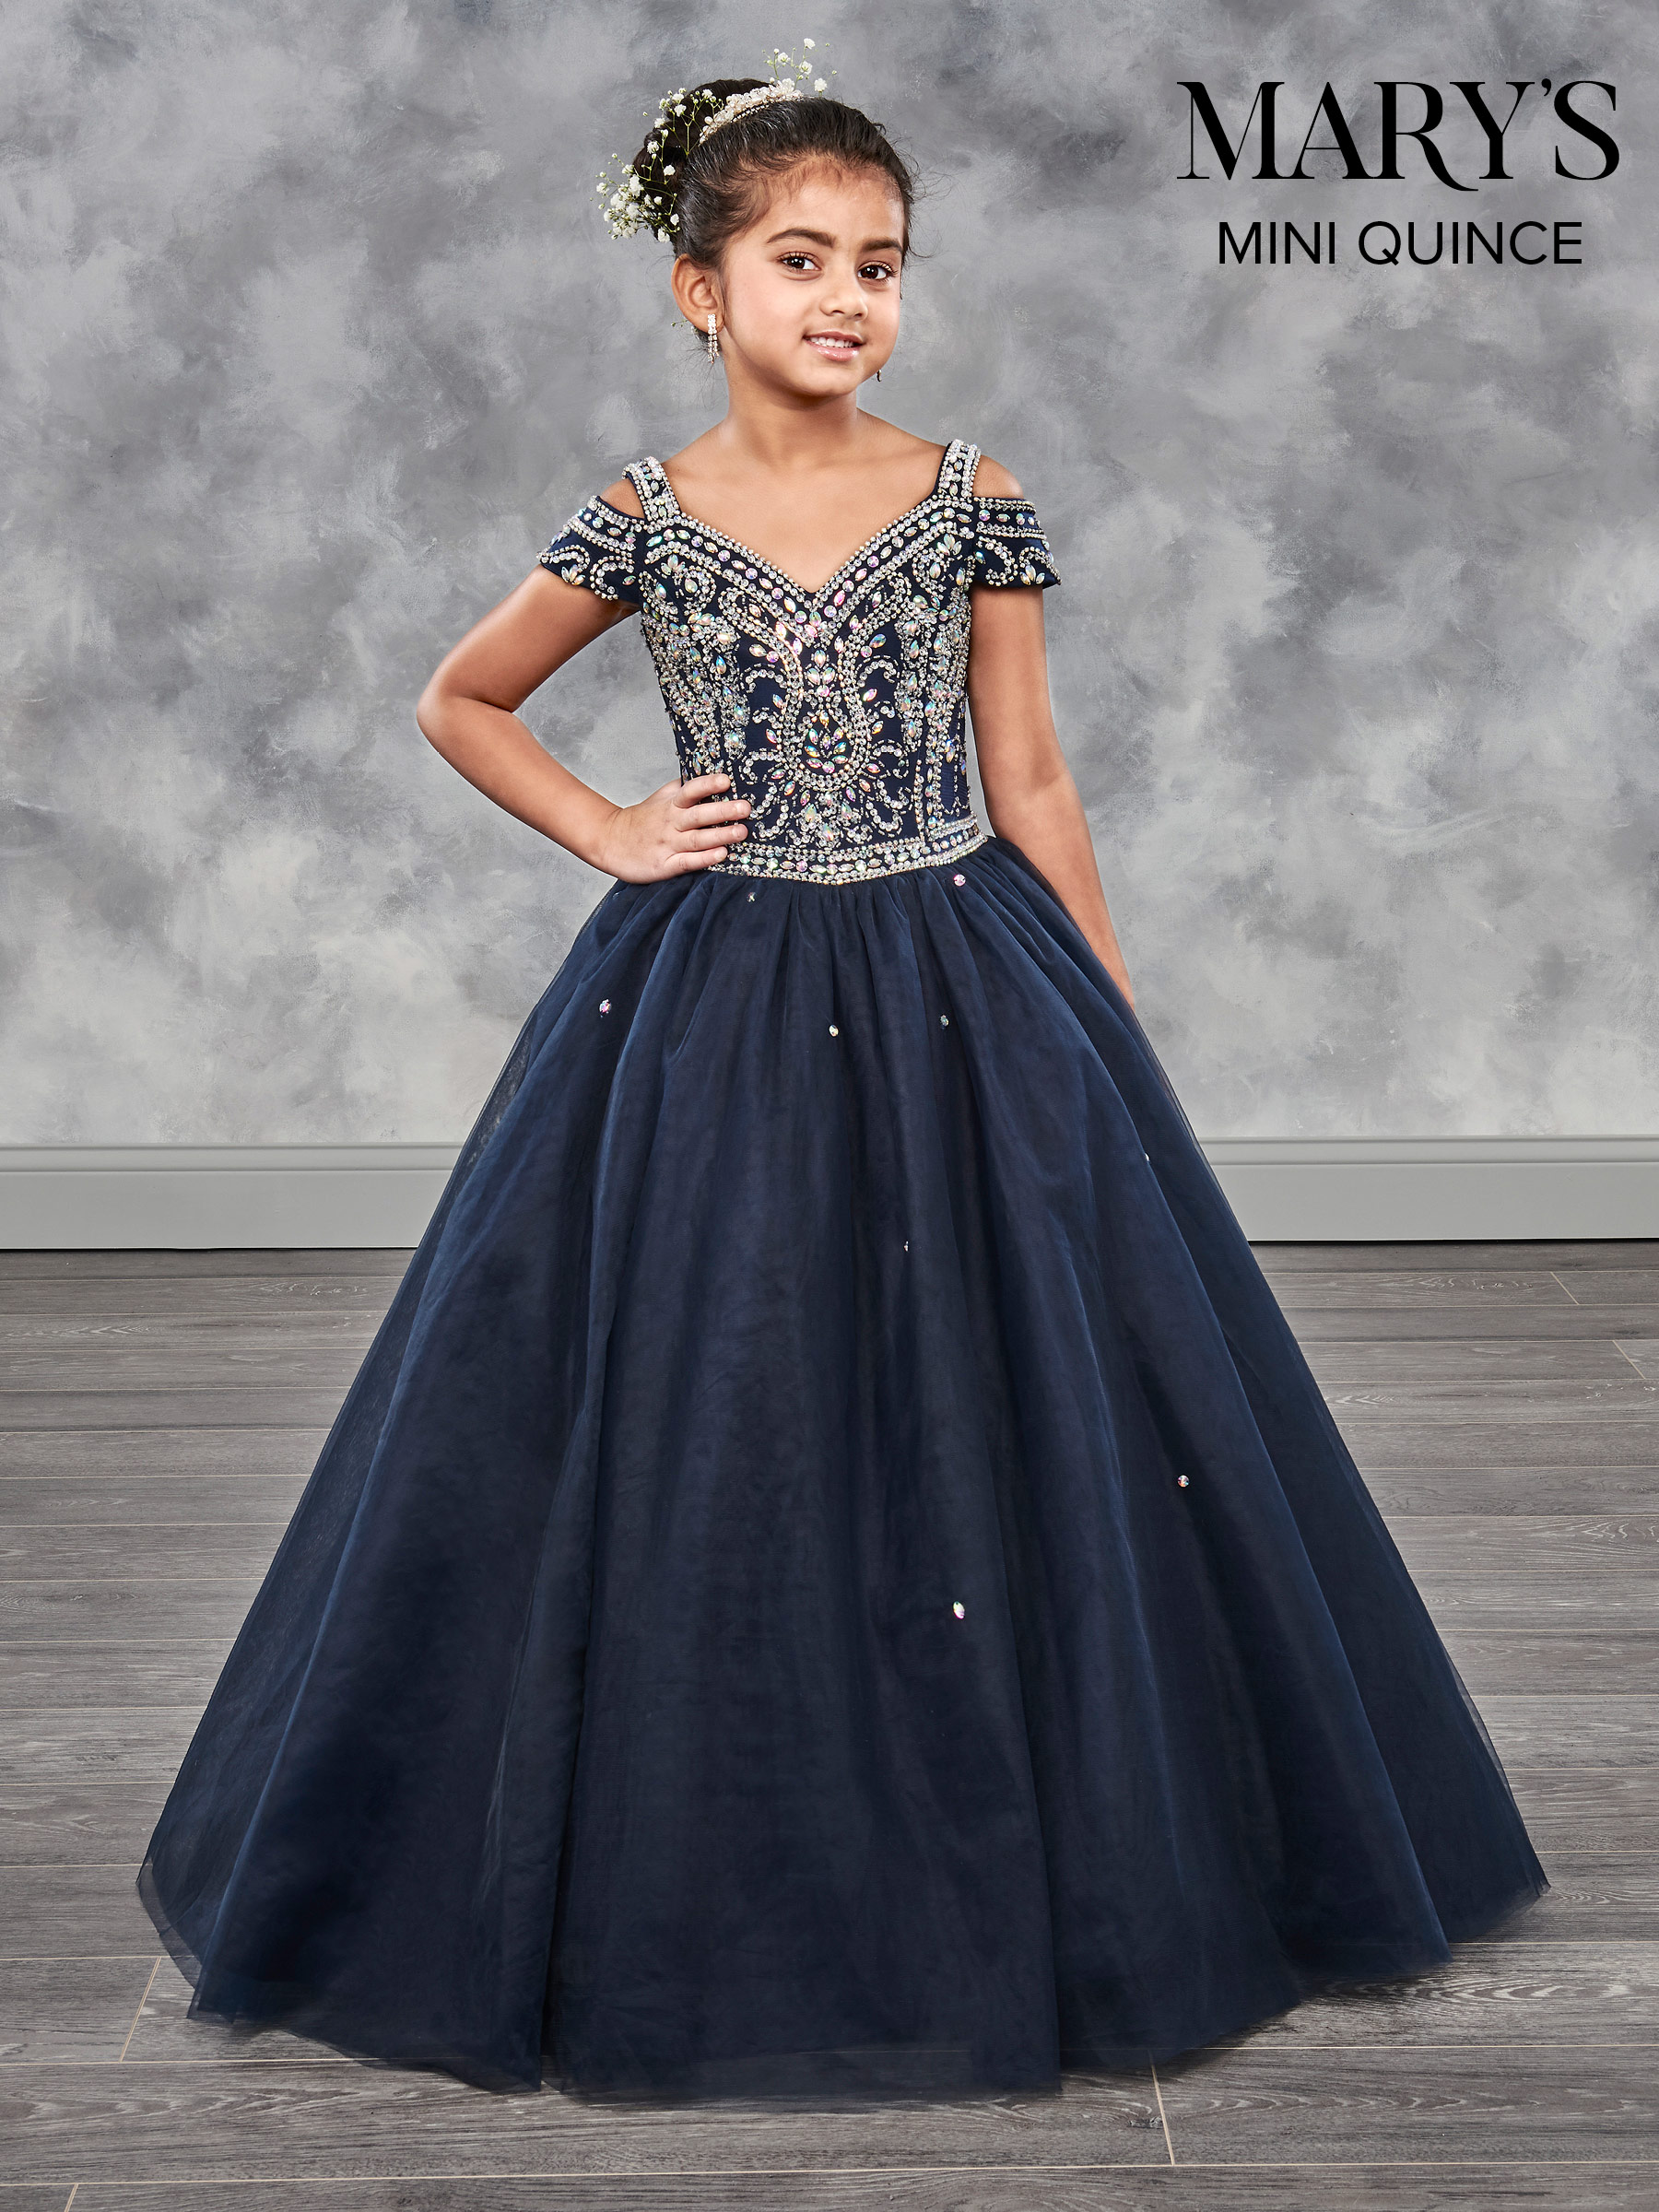 Little Quince Dresses | Mini Quince | Style - MQ4002